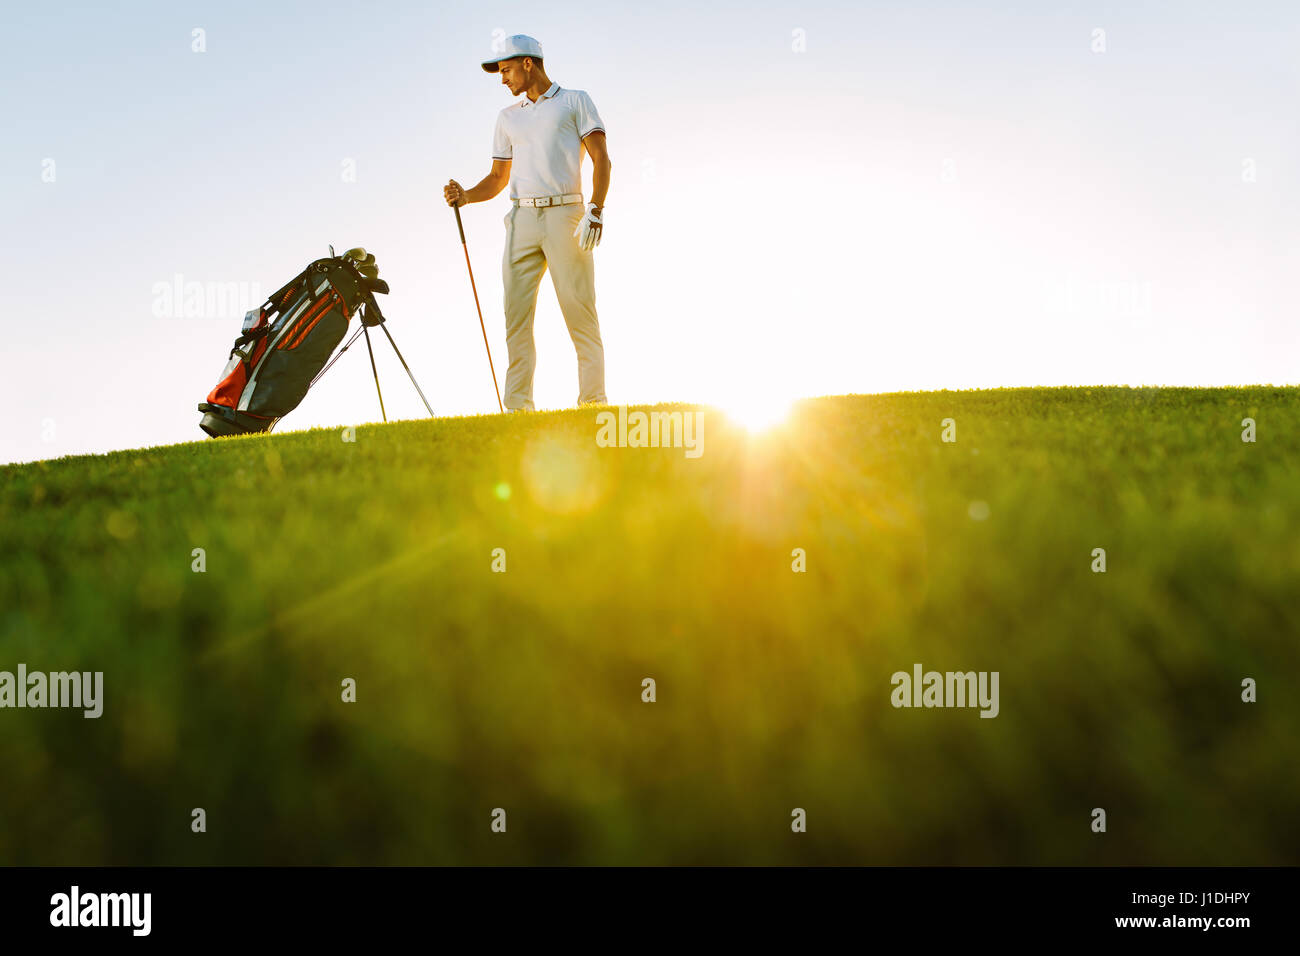 Full length of golf player looking at bag while standing on field during sunny day. Low angle shot of male golfer - Stock Image